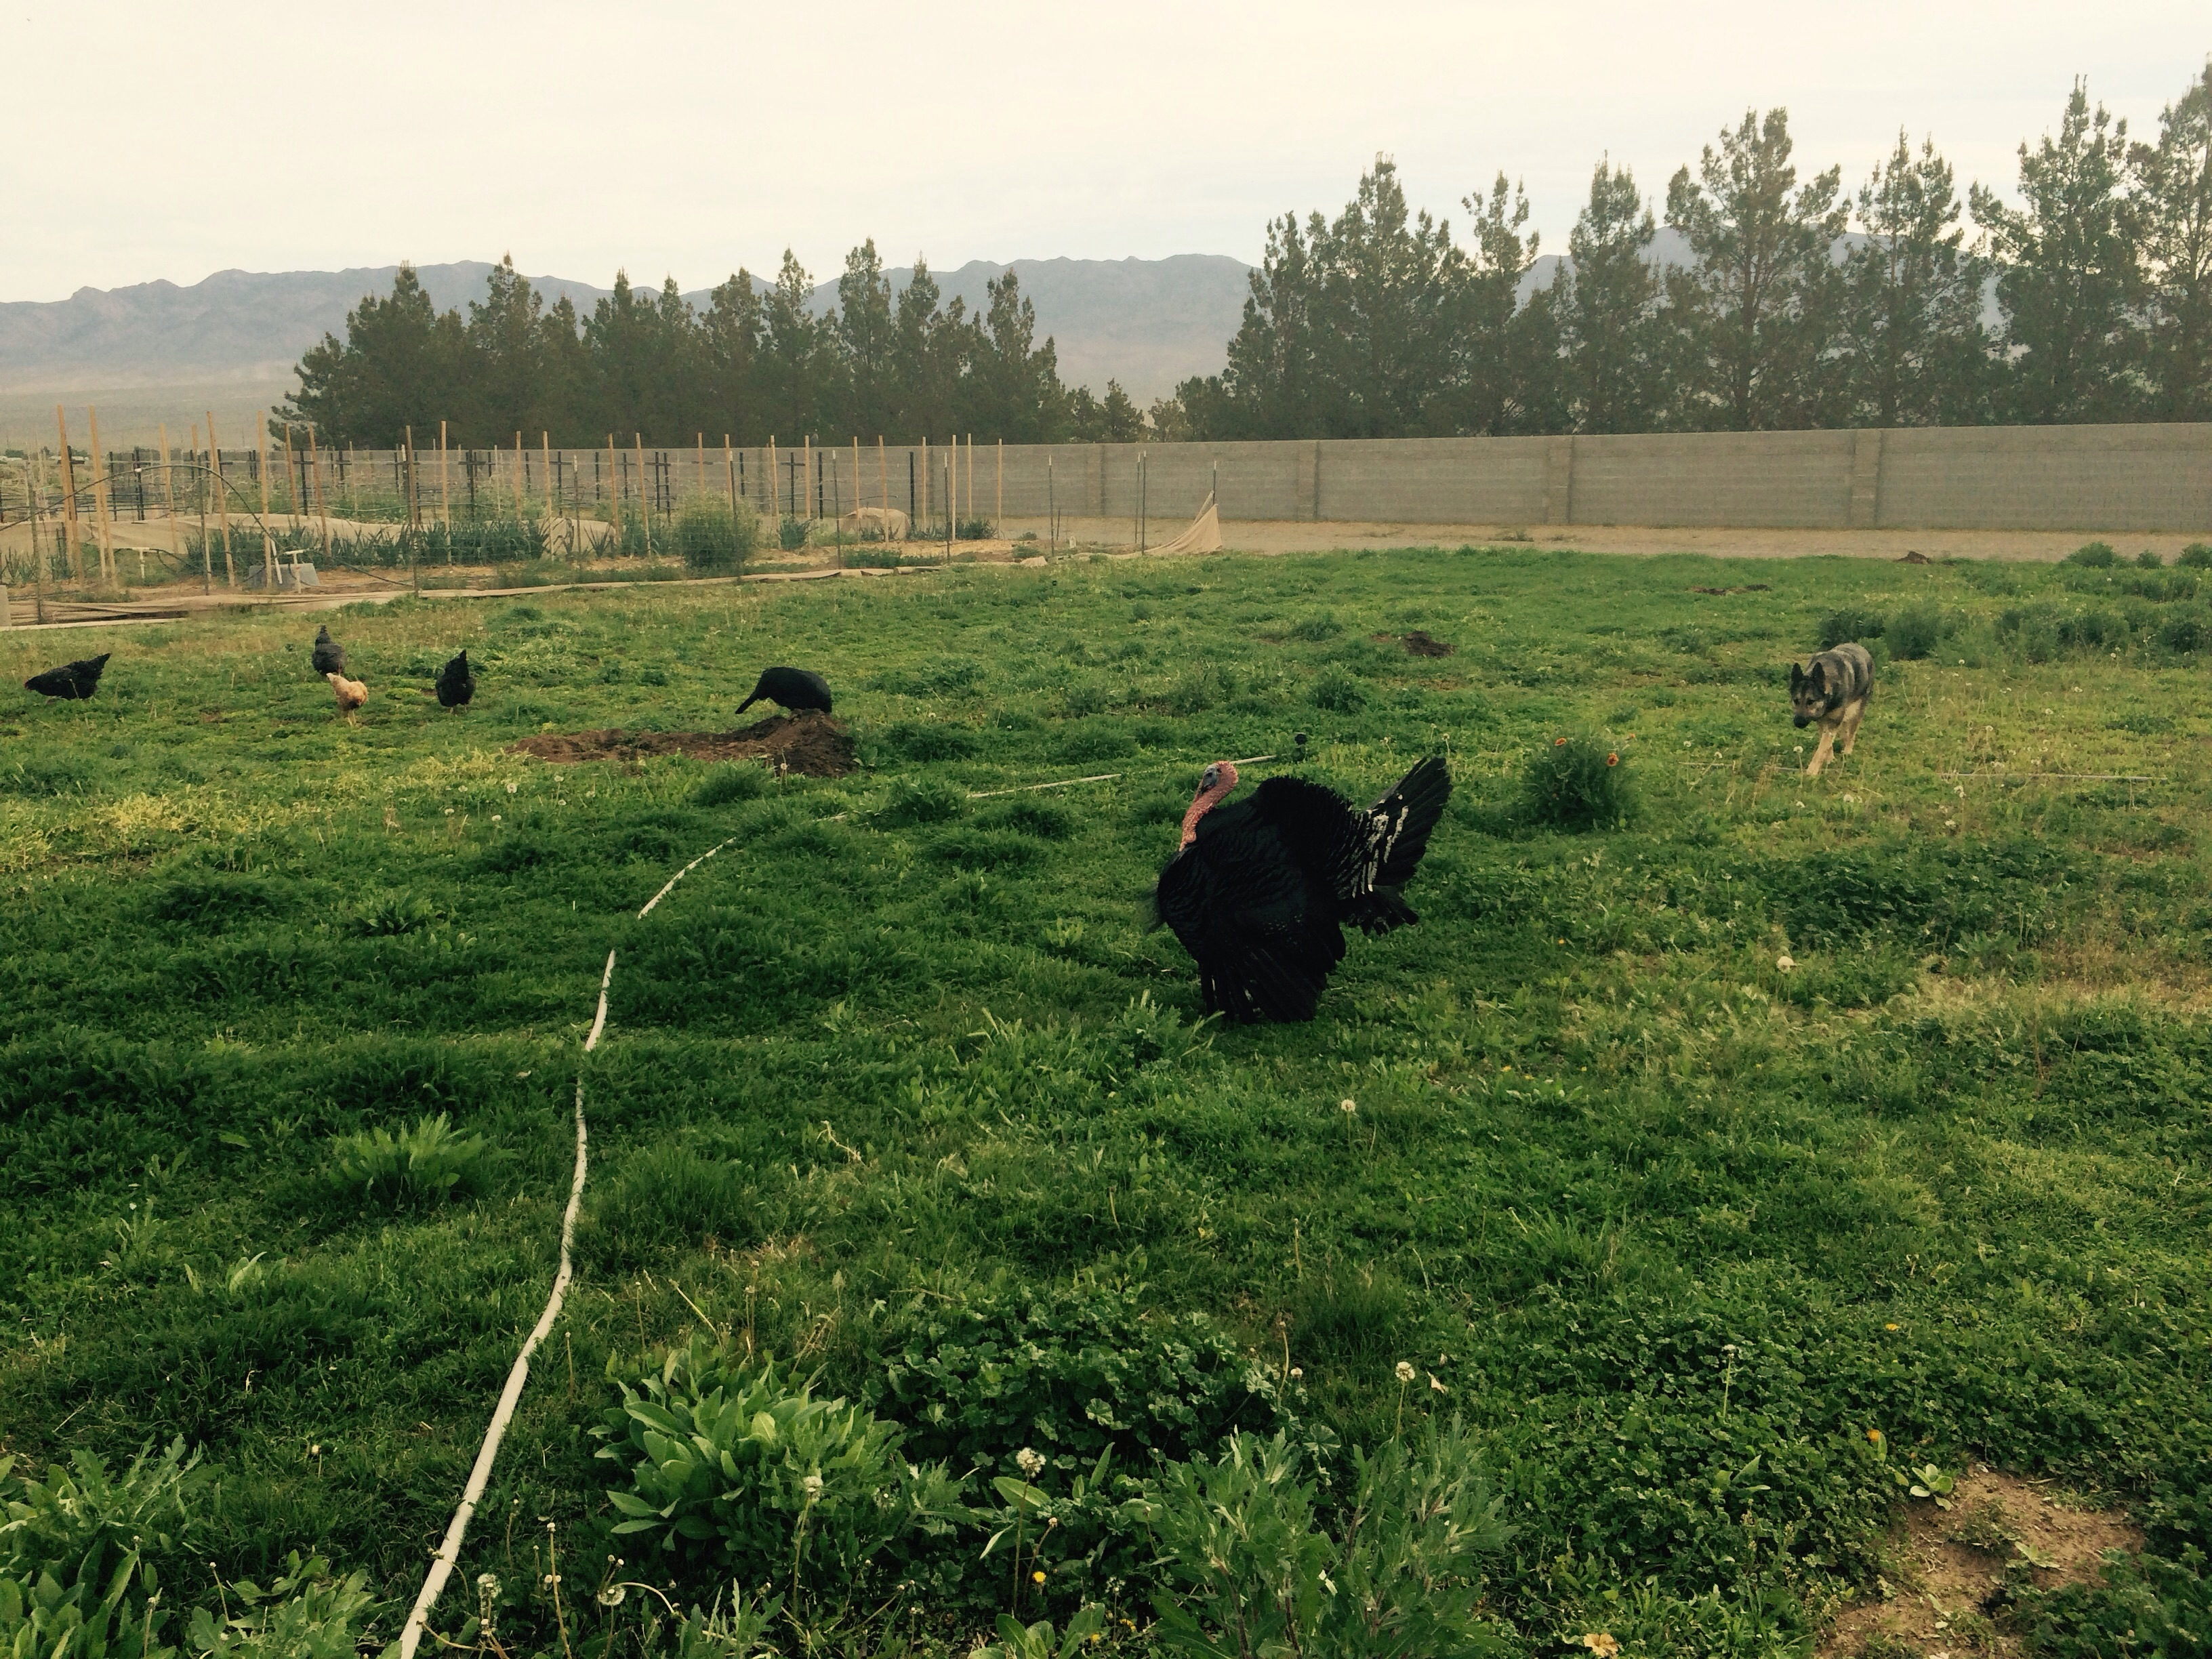 Daddy turkey and mamas along with chickens are out on the chicken grass pastures